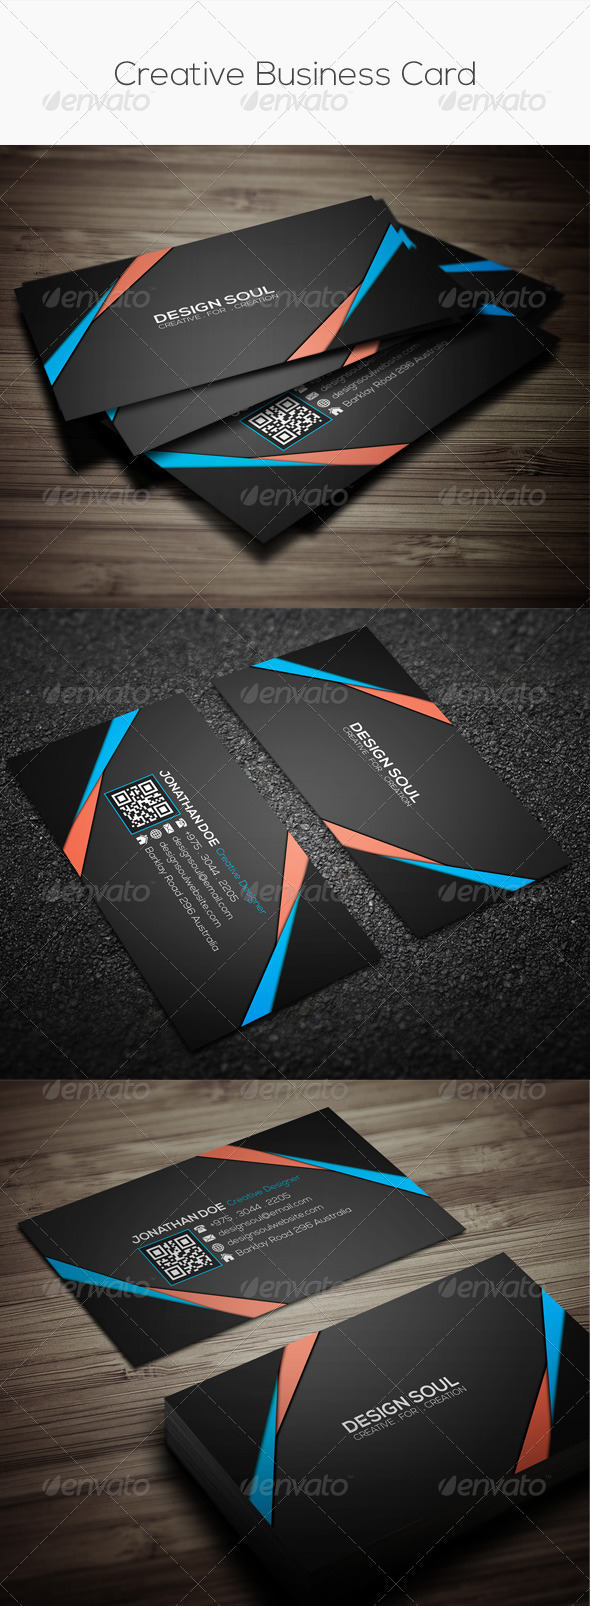 GraphicRiver Creative Business Card 7992736